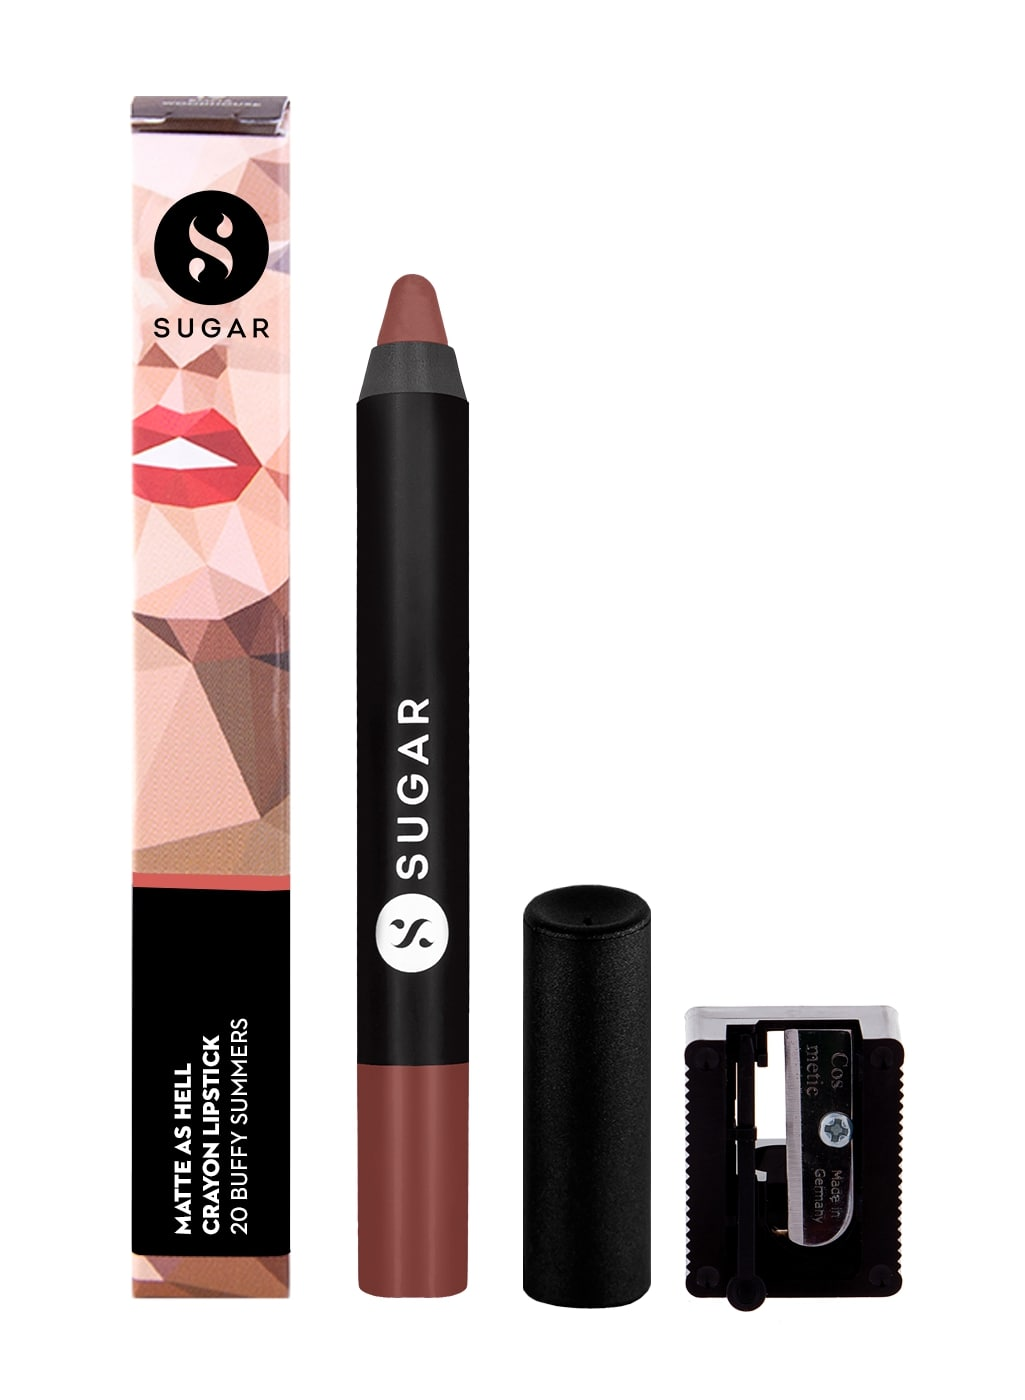 SUGAR Matte As Hell Crayon Lipstick - 20 Buffy Summers (Mid-tone Warm Nude)